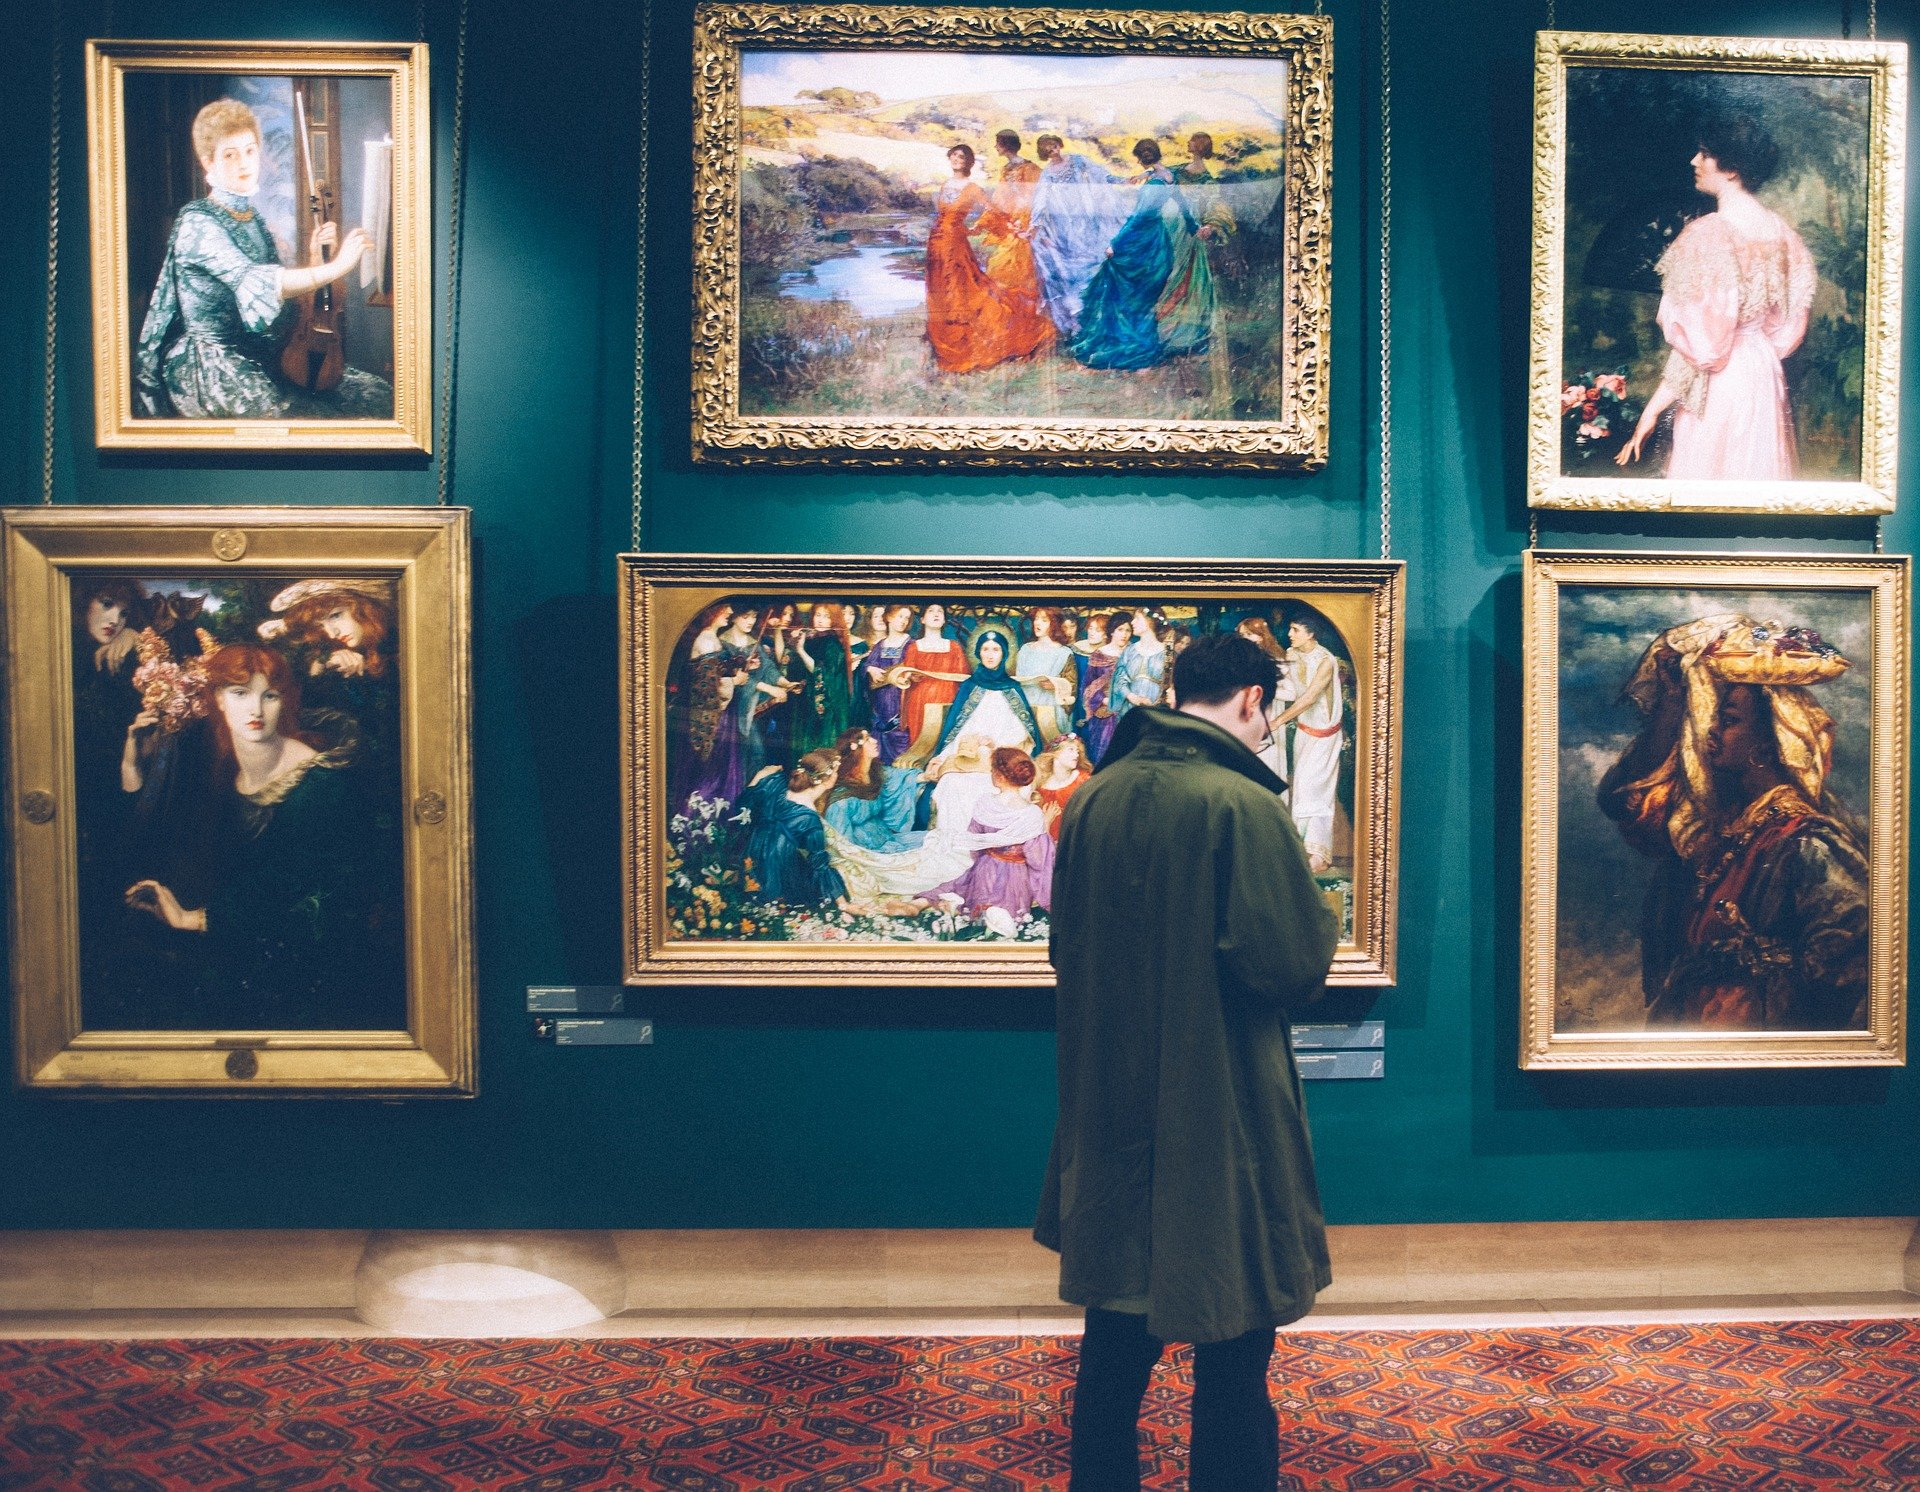 Man looking at paintings on wall of a museum